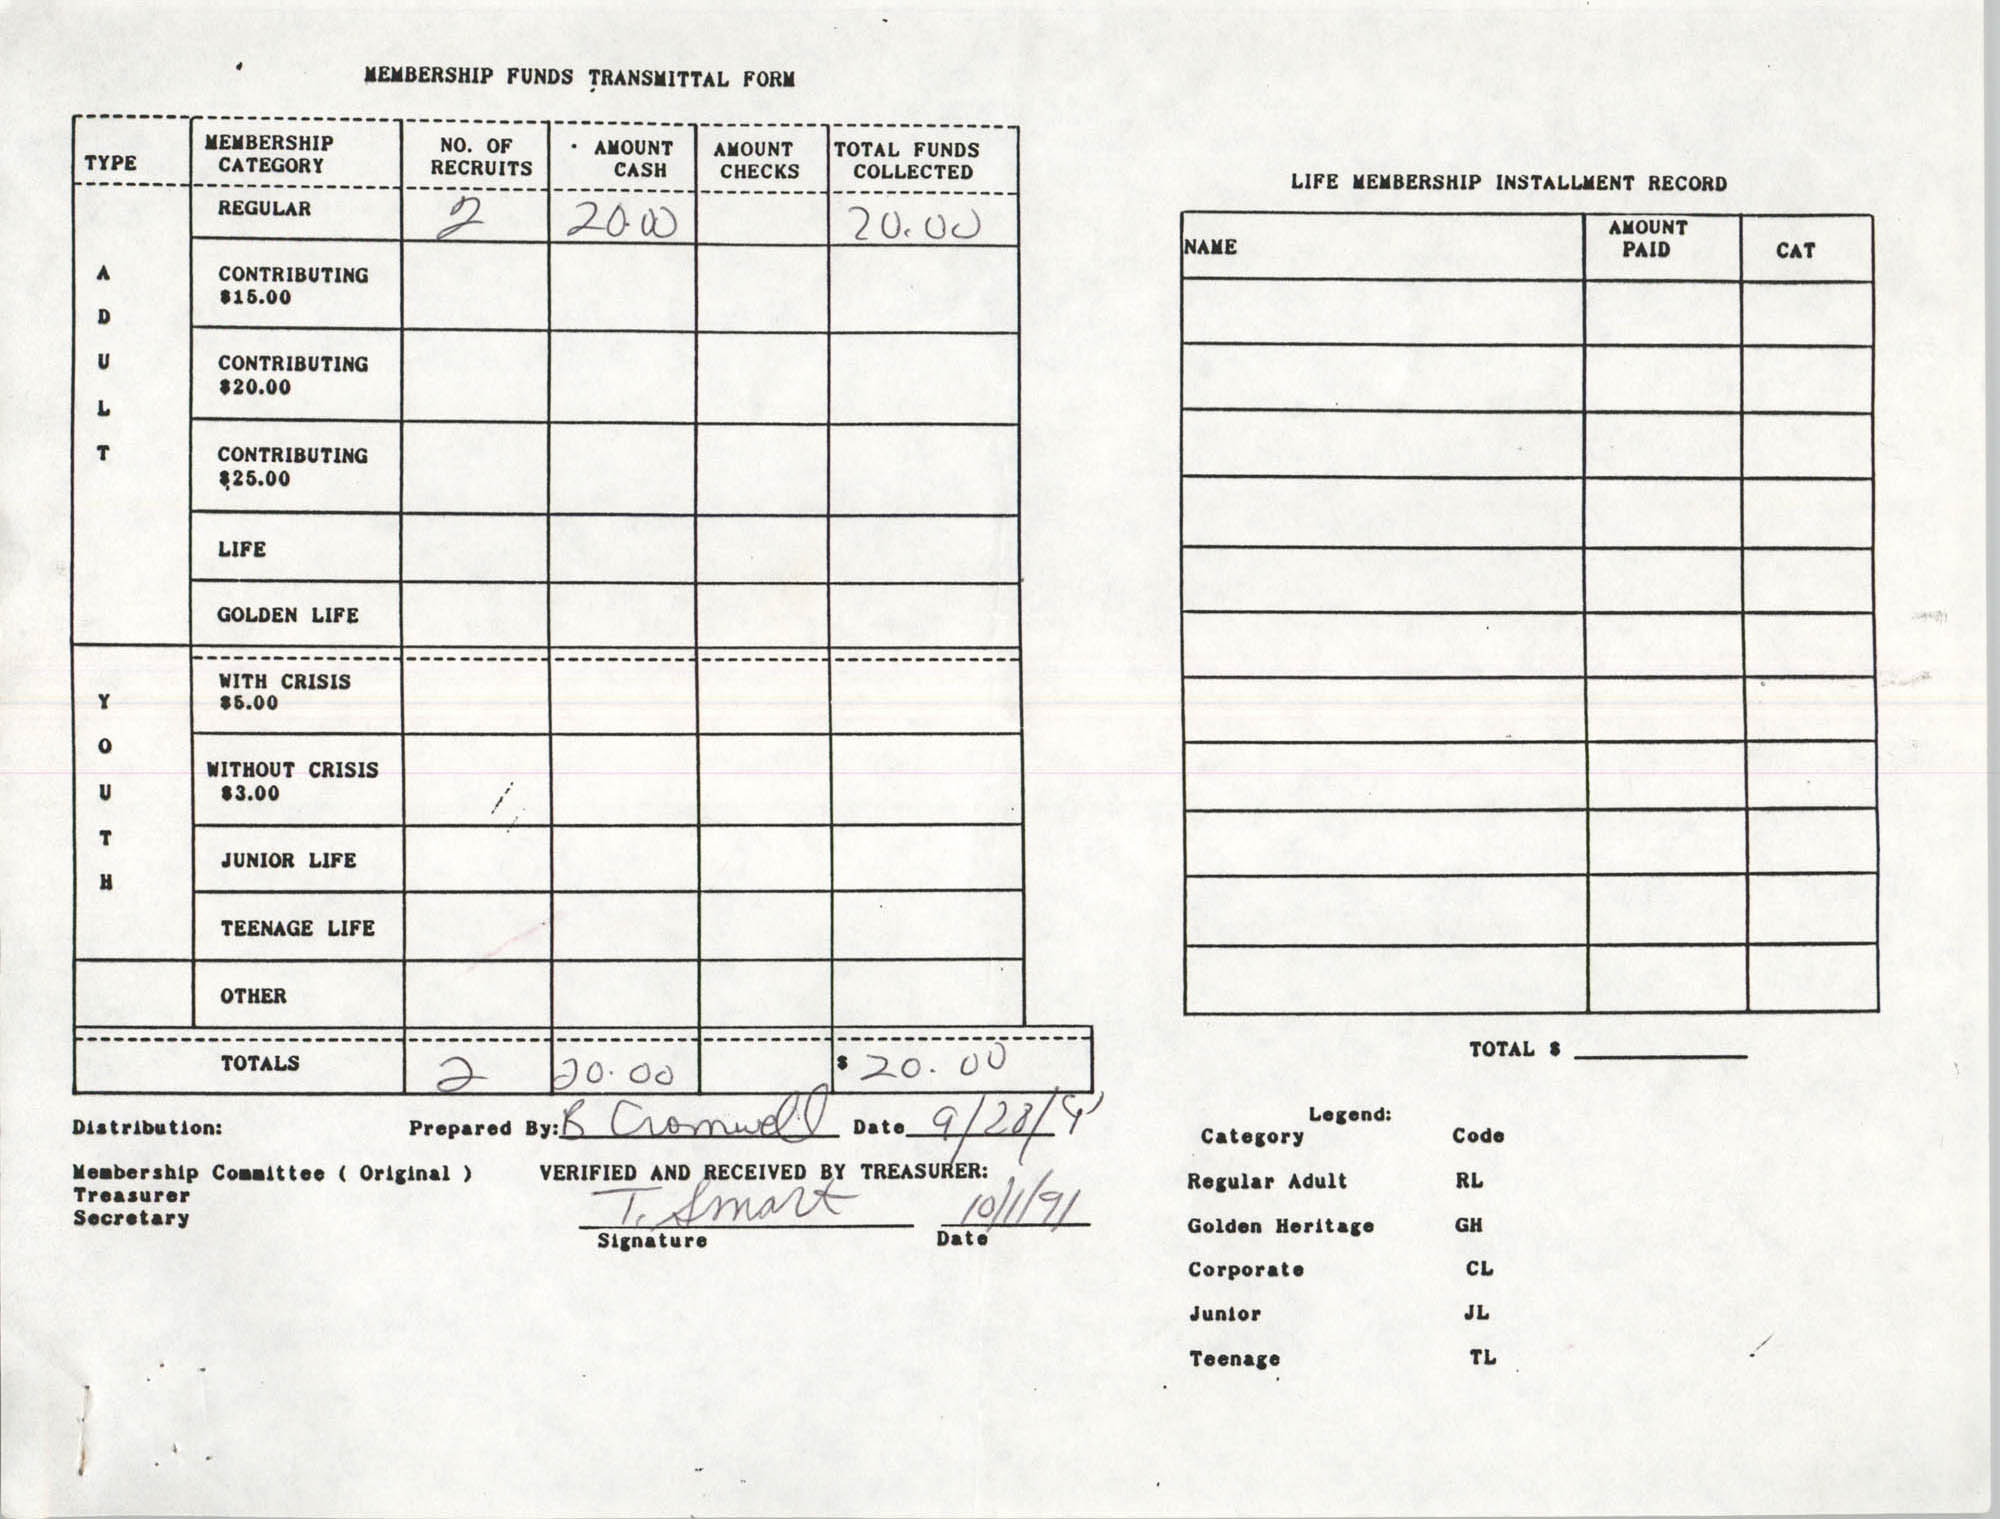 Charleston Branch of the NAACP Funds Transmittal Forms, October 1991, Page 1